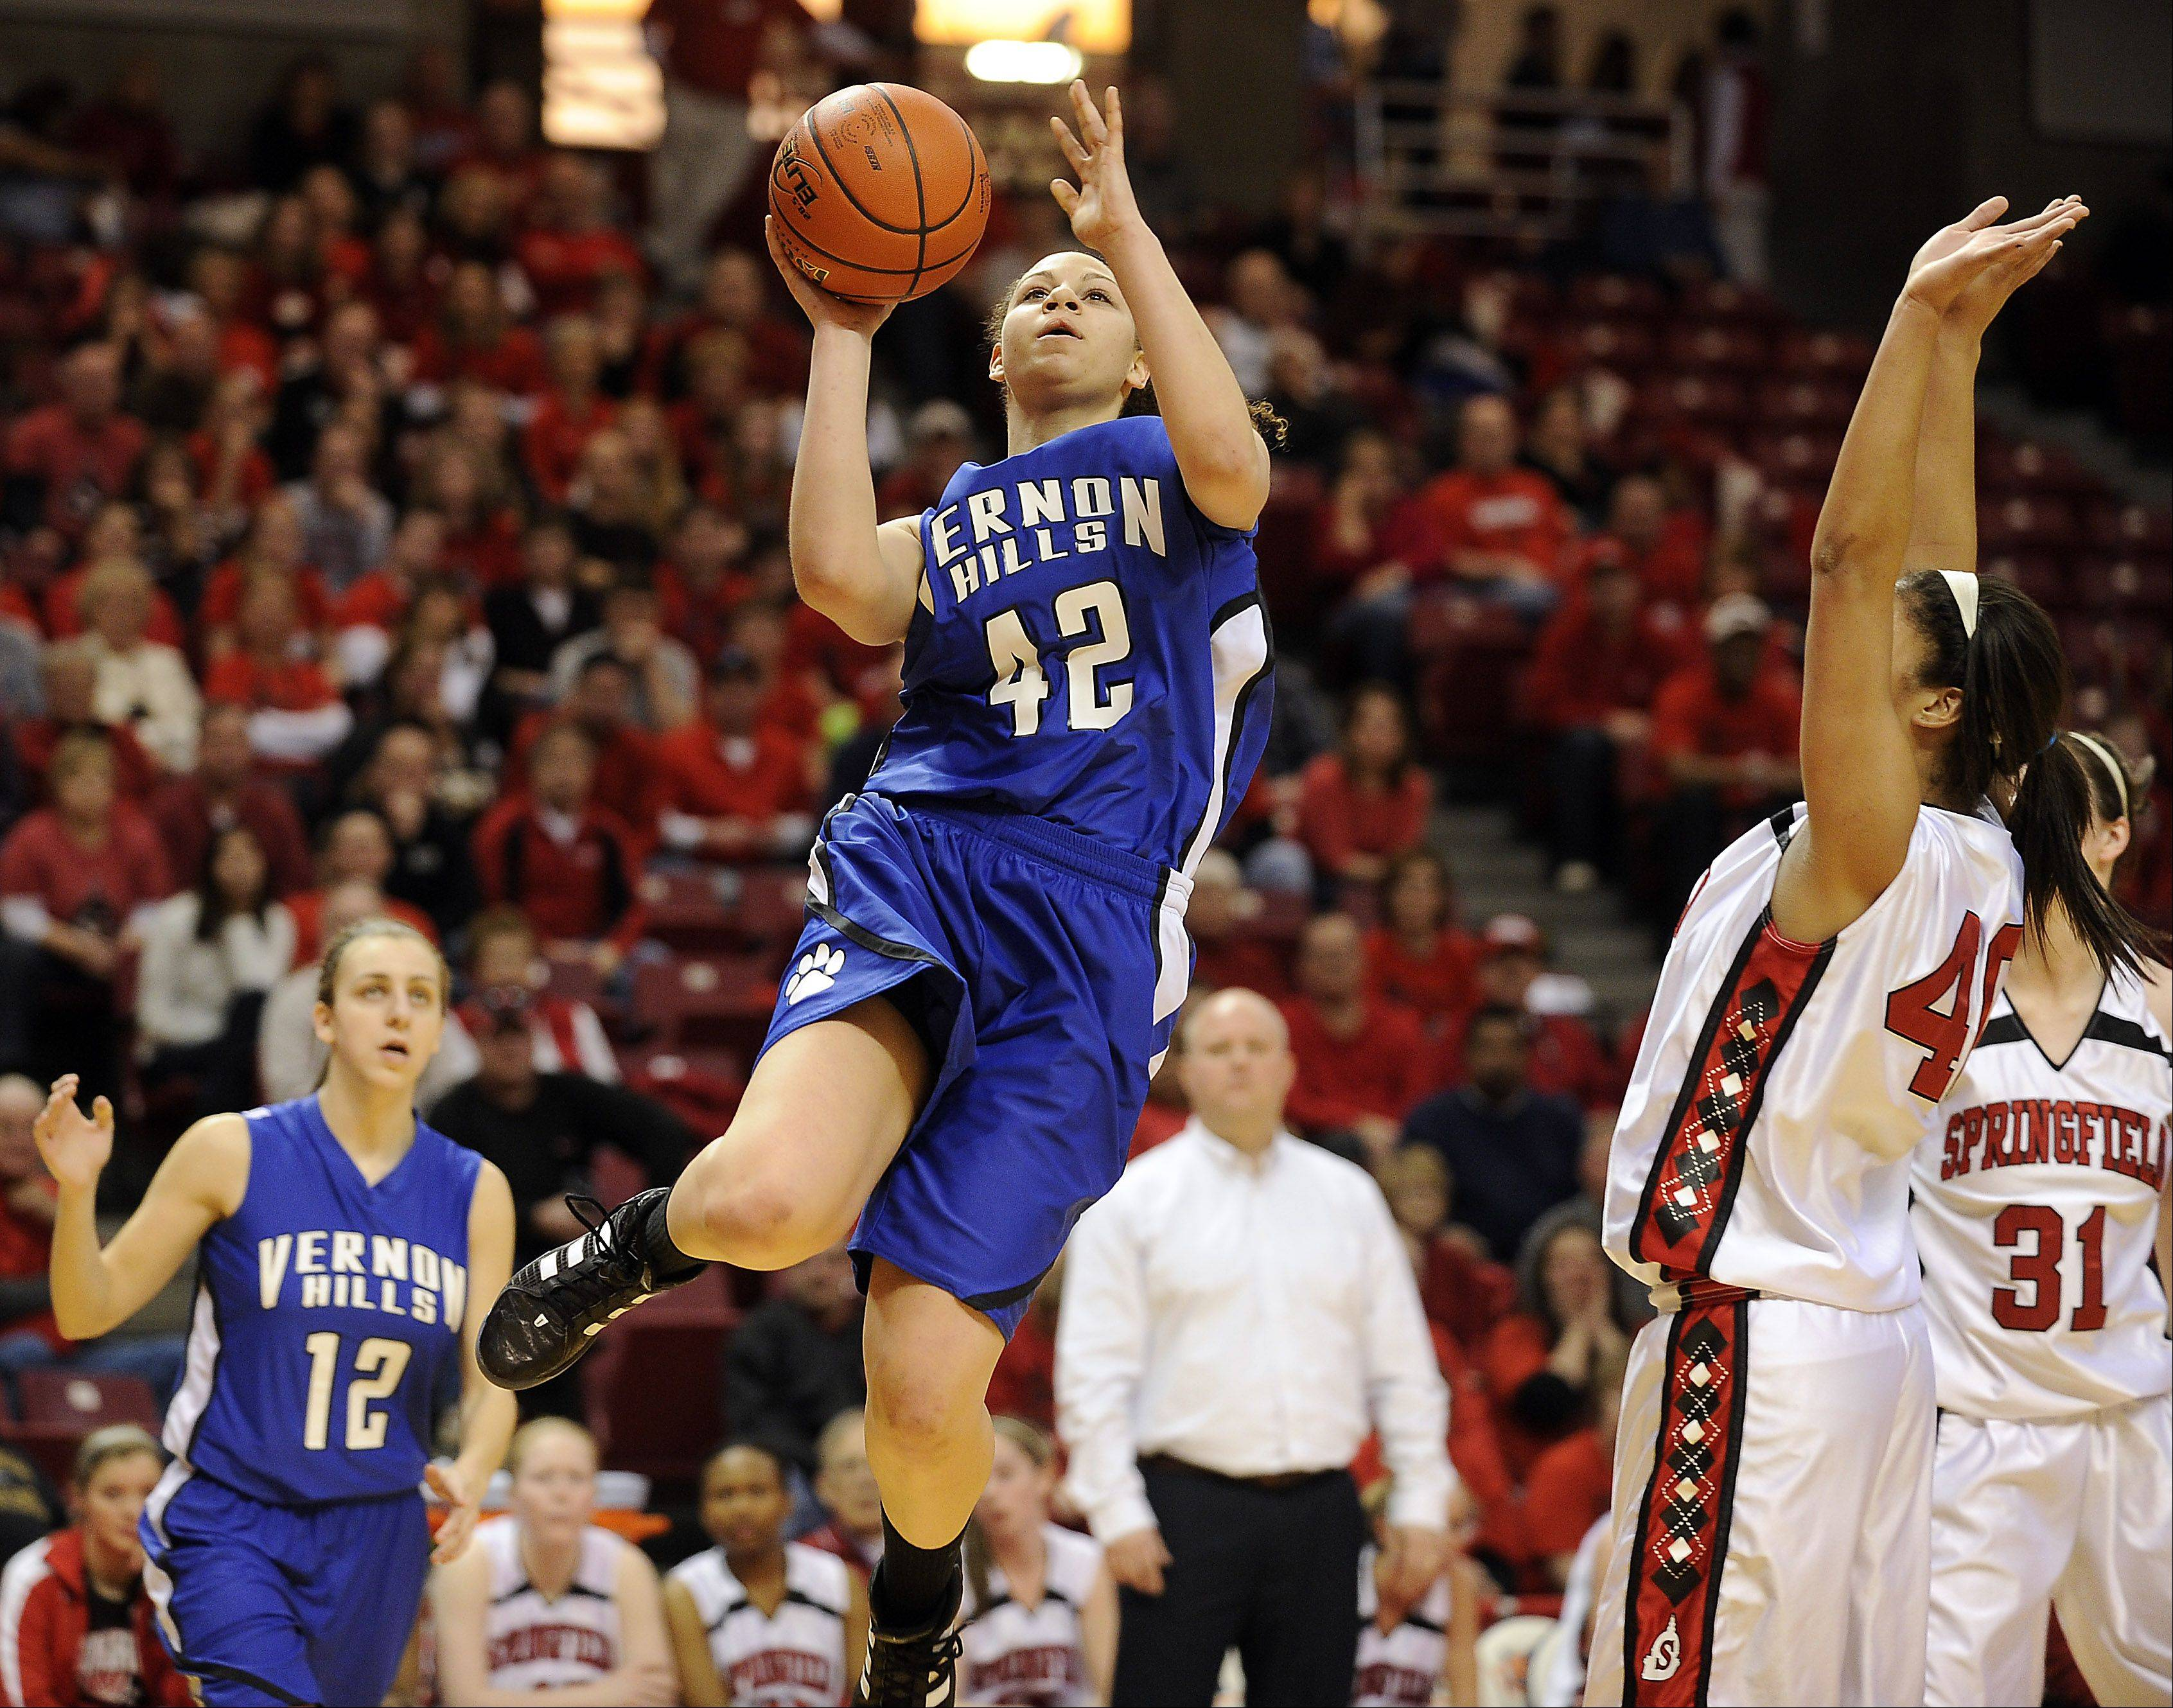 Vernon Hills' Lauren Webb flies solo in the second quarter of play for the bucket in the 2012 IHSA Class 3A girls basketball tournament in Normal, Illinois on Friday.